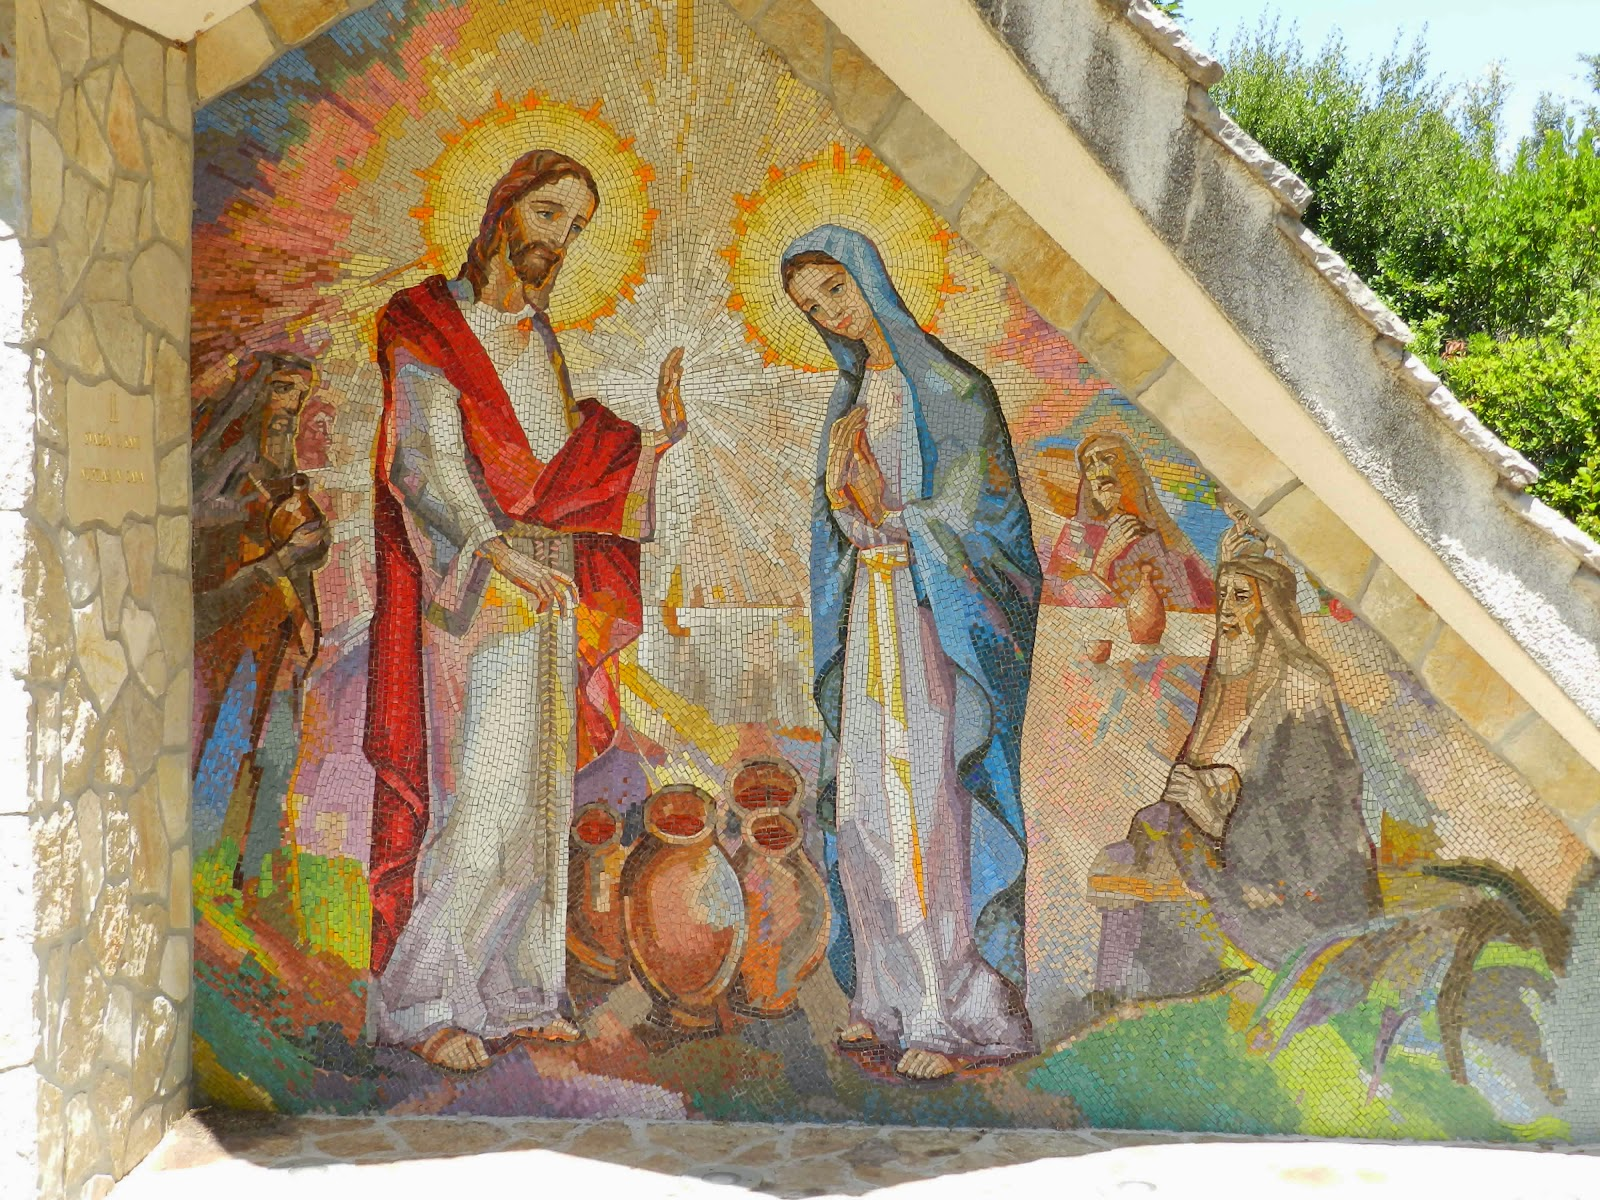 The second Luminous Mystery Mosaic in Medjugorje, the Wedding of Cana